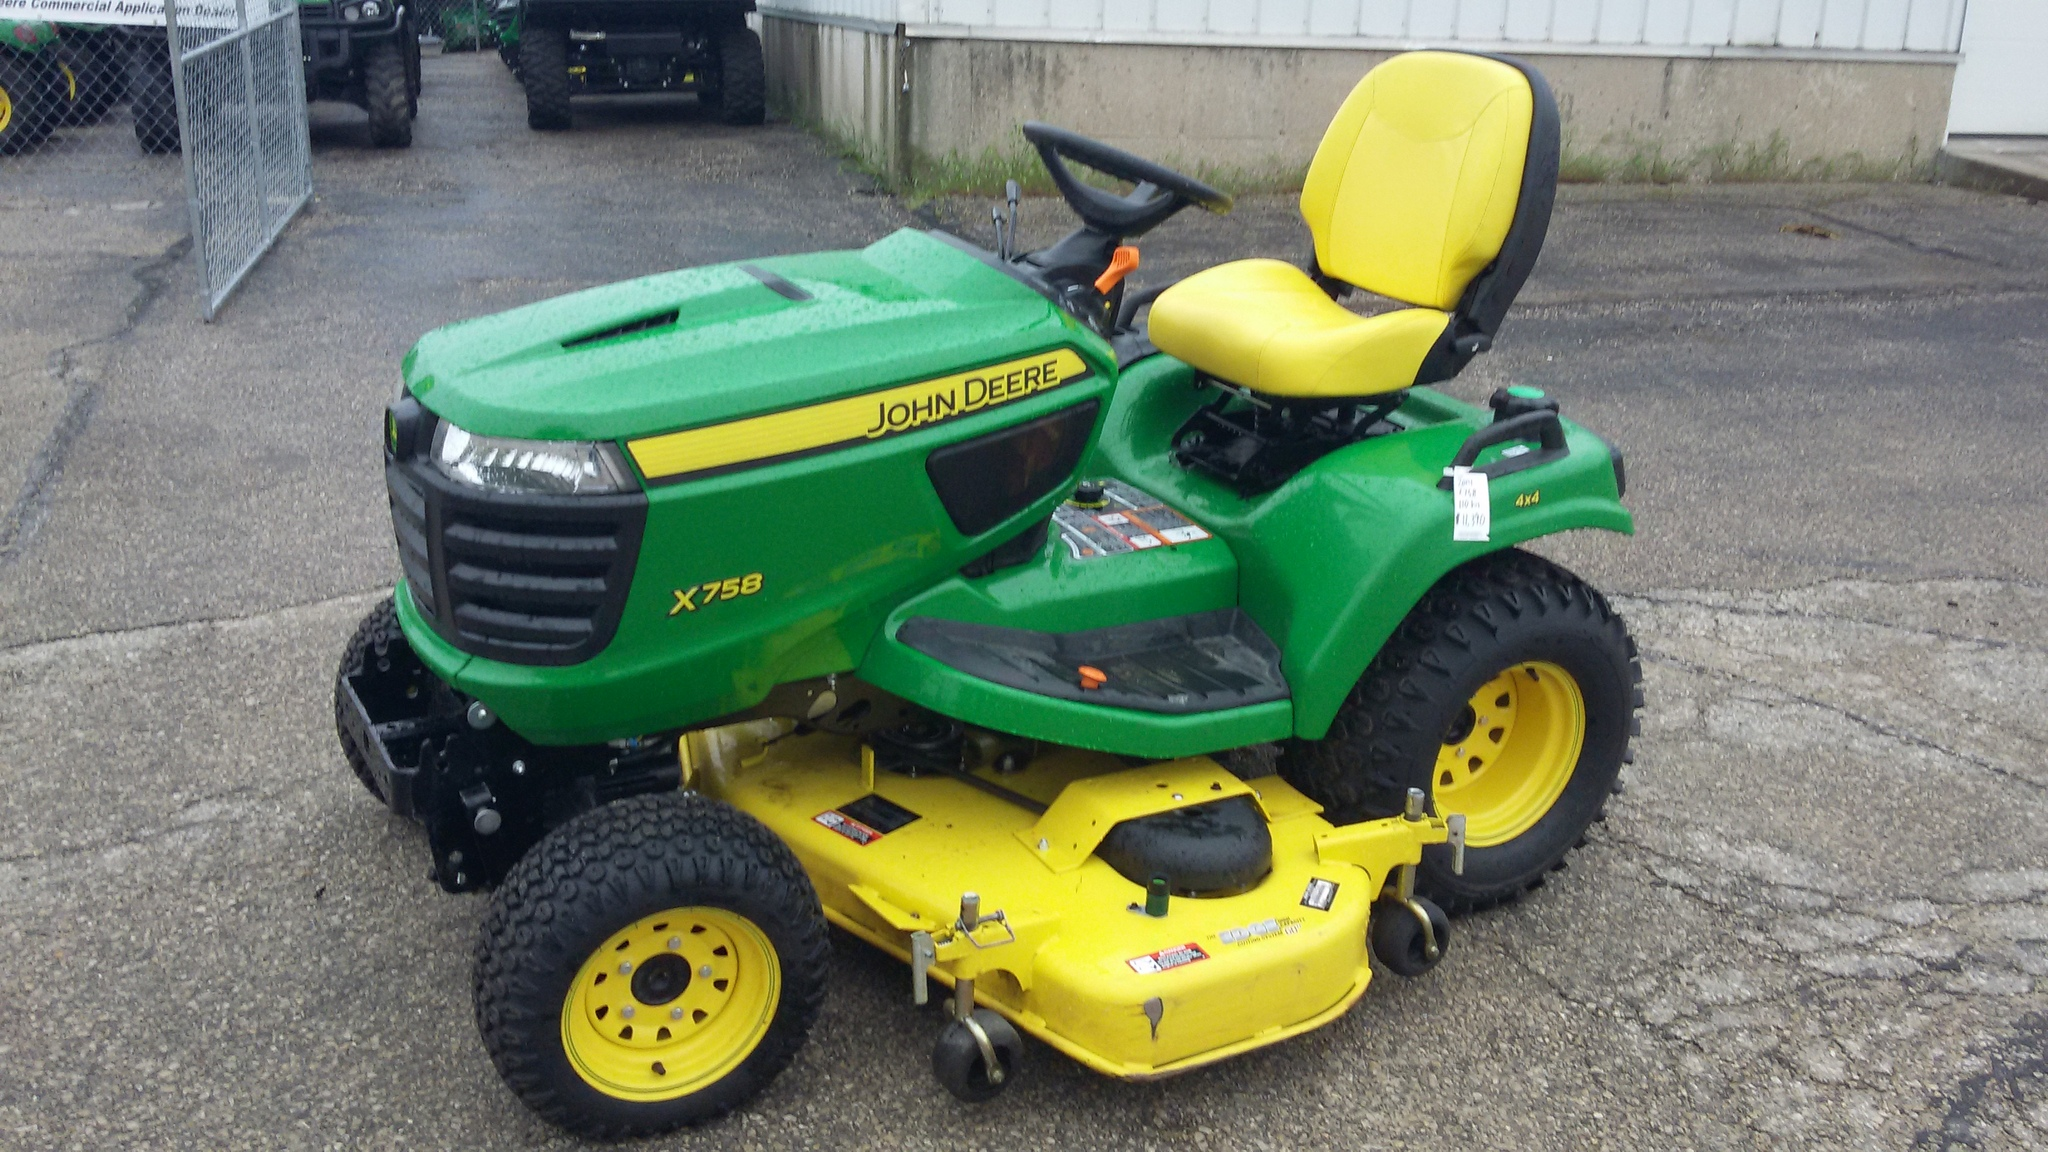 John deere x758 lawn garden tractors for sale 58865 for Lawn and garden implements